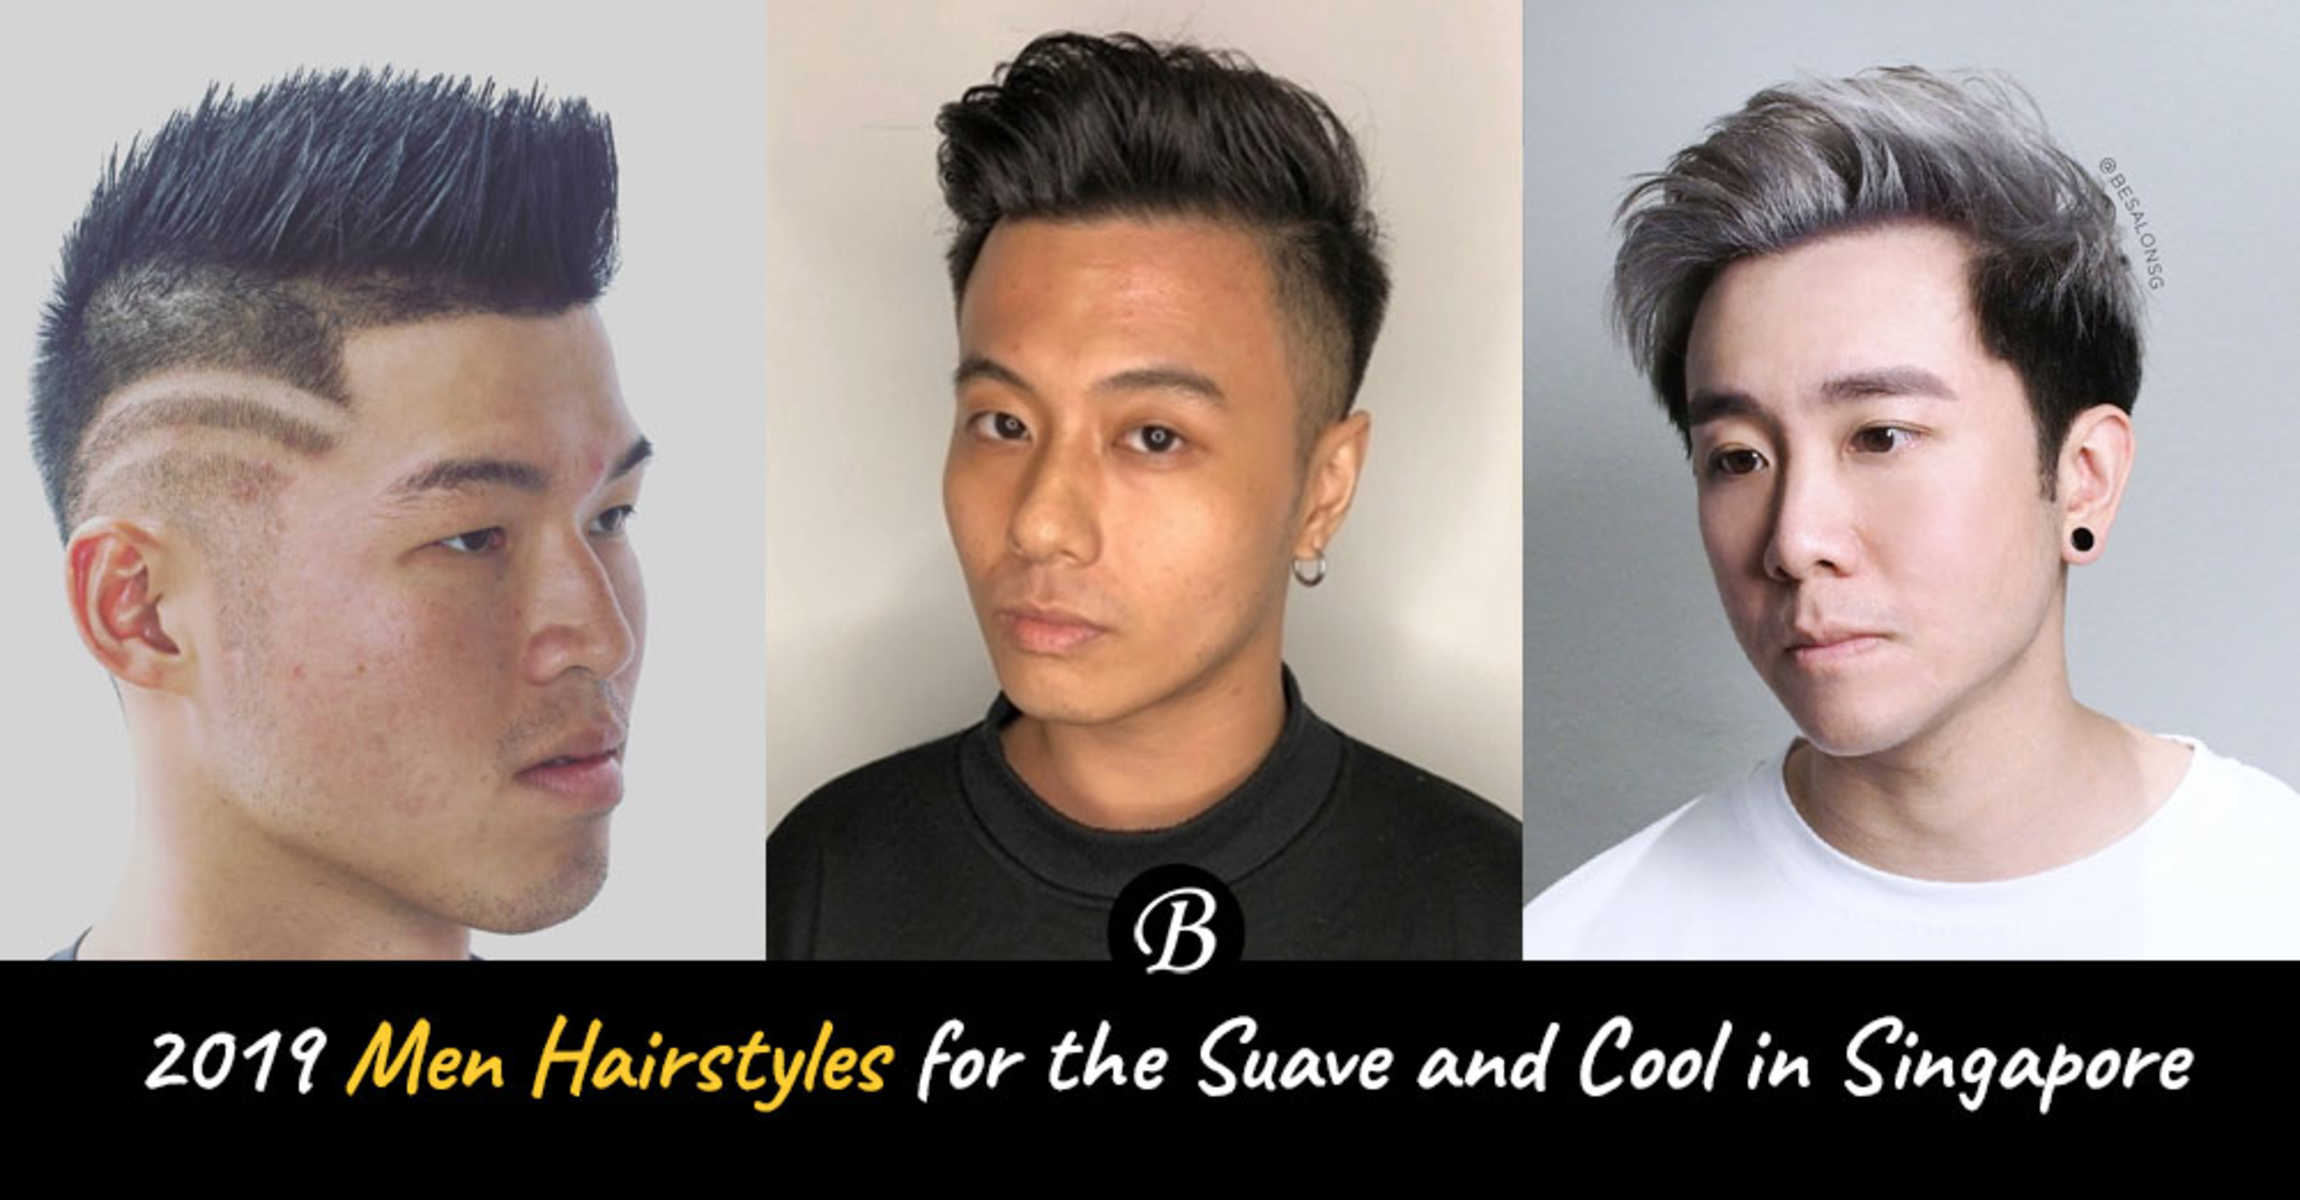 2019 S Trending Men S Hairstyles For The Suave And Fashion